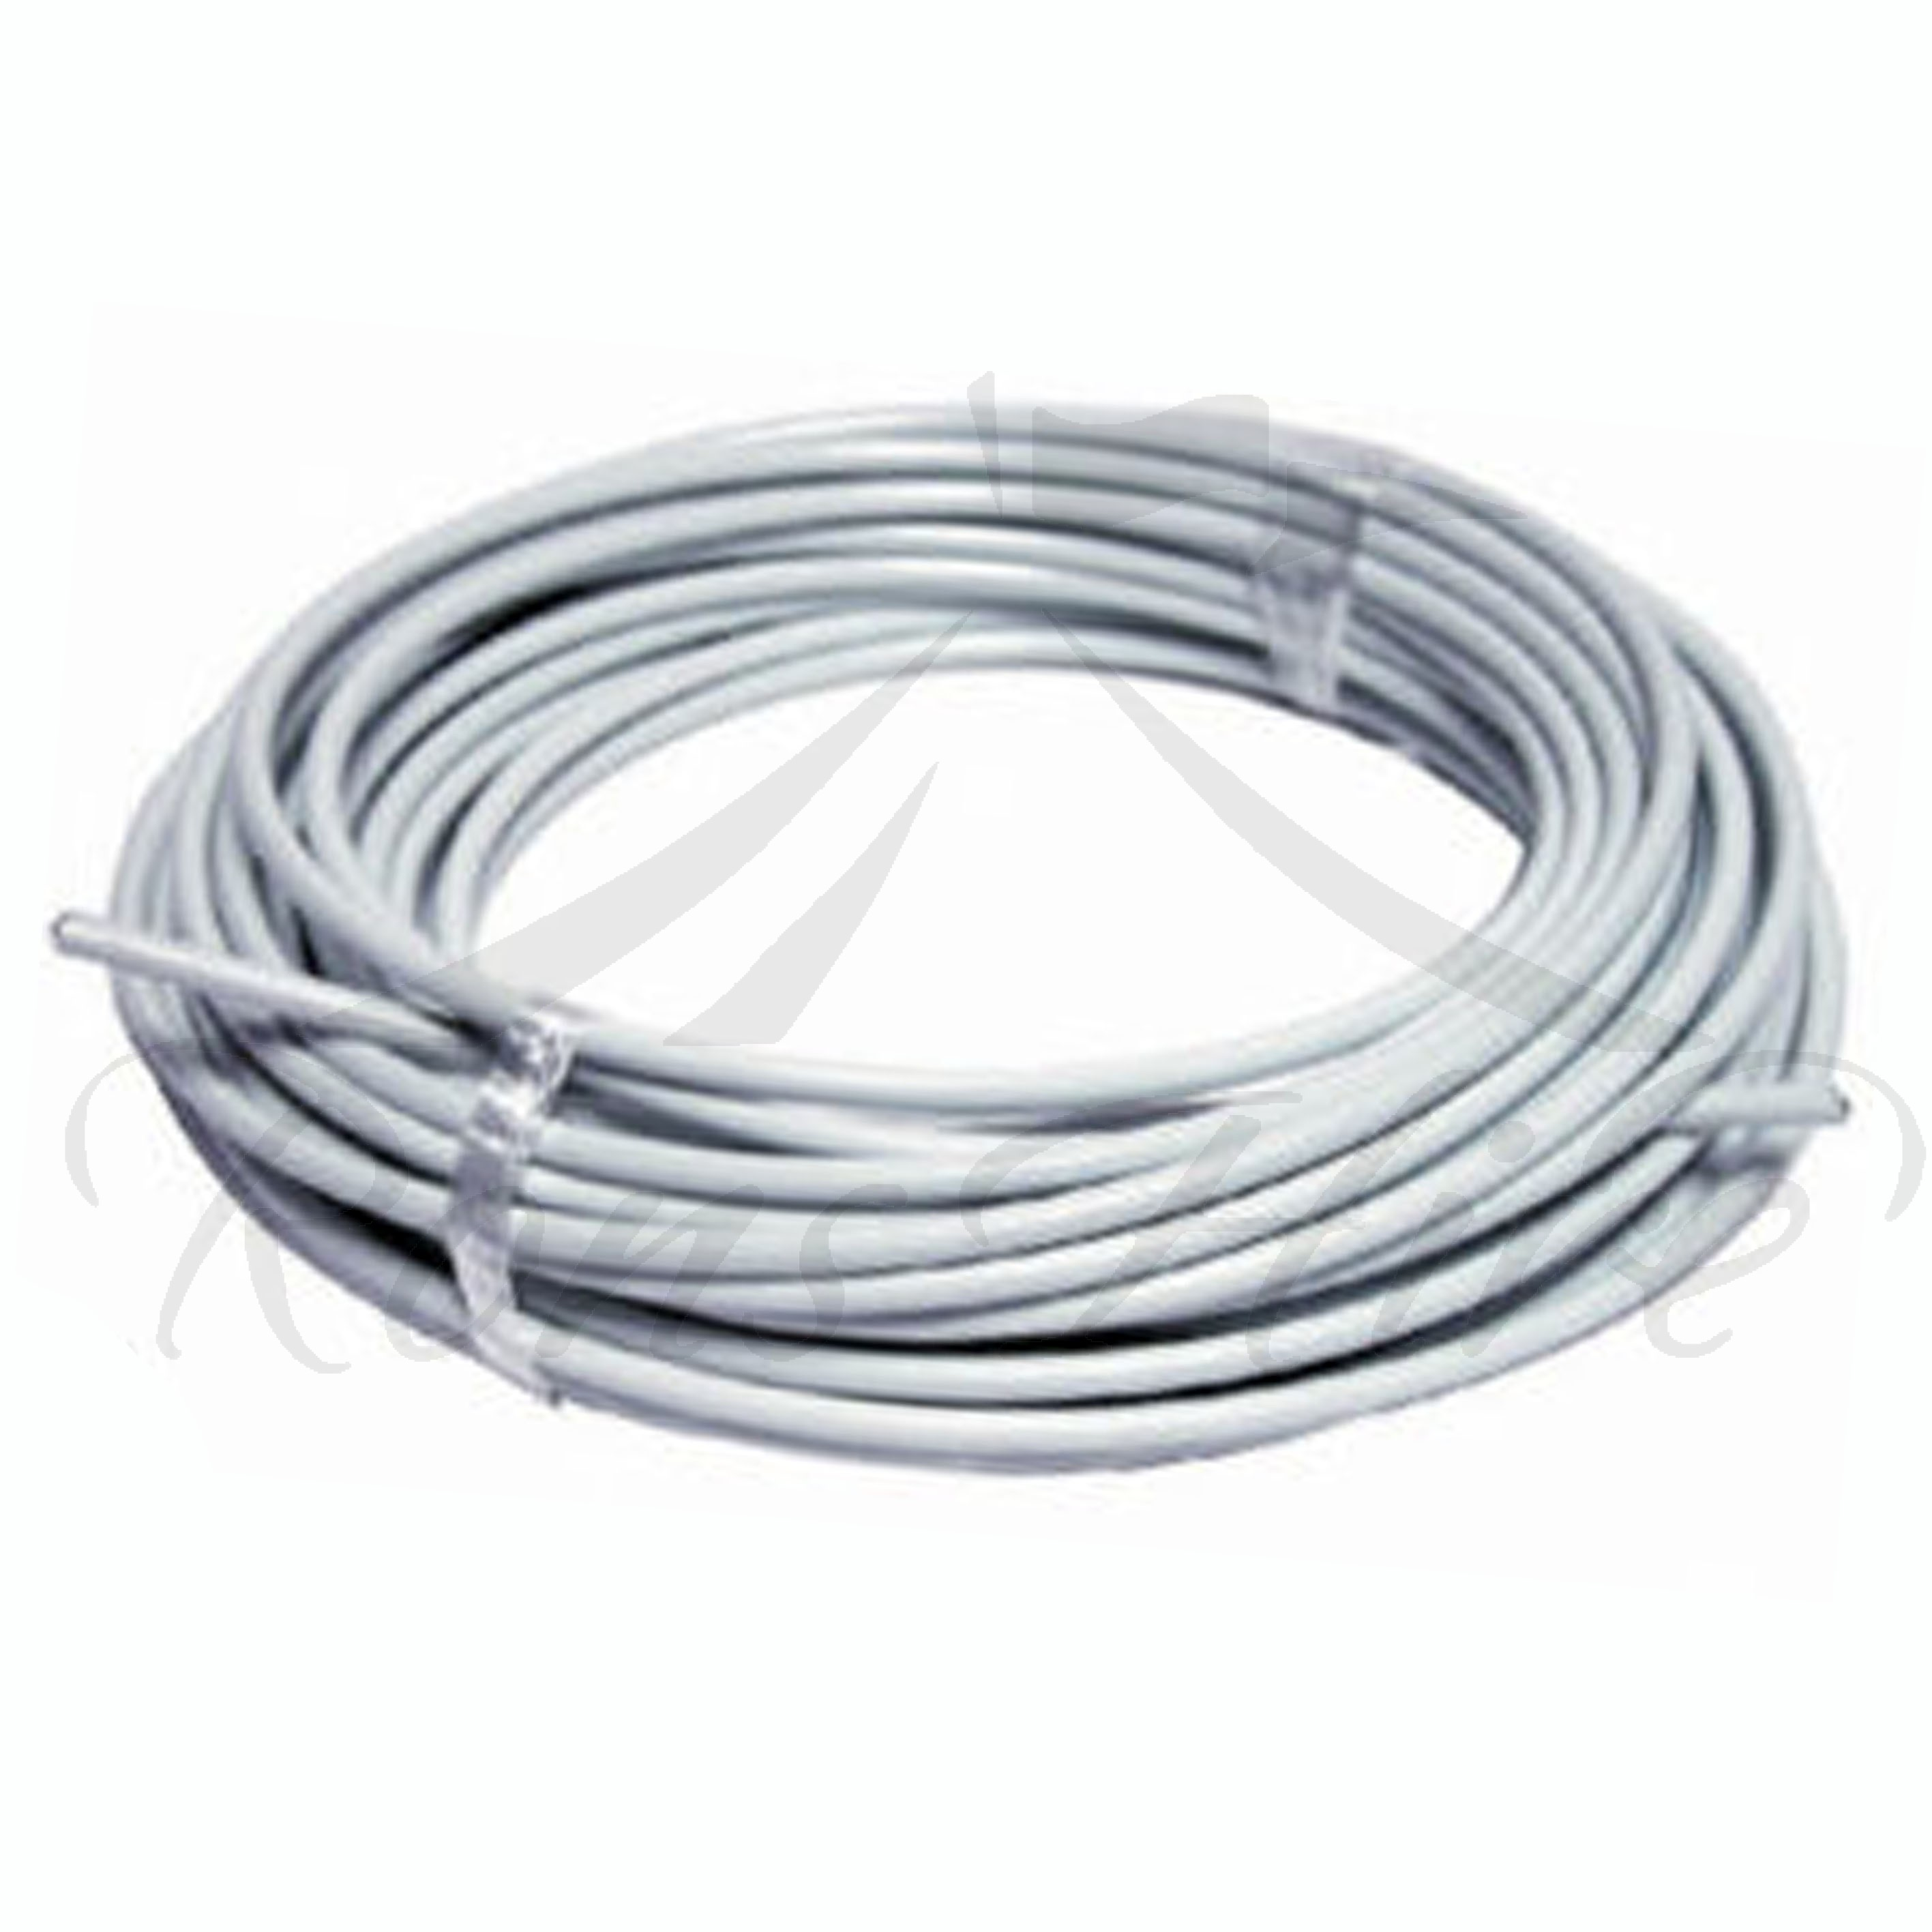 Extension Cord - White Cable Electrical 10m Extension Cord